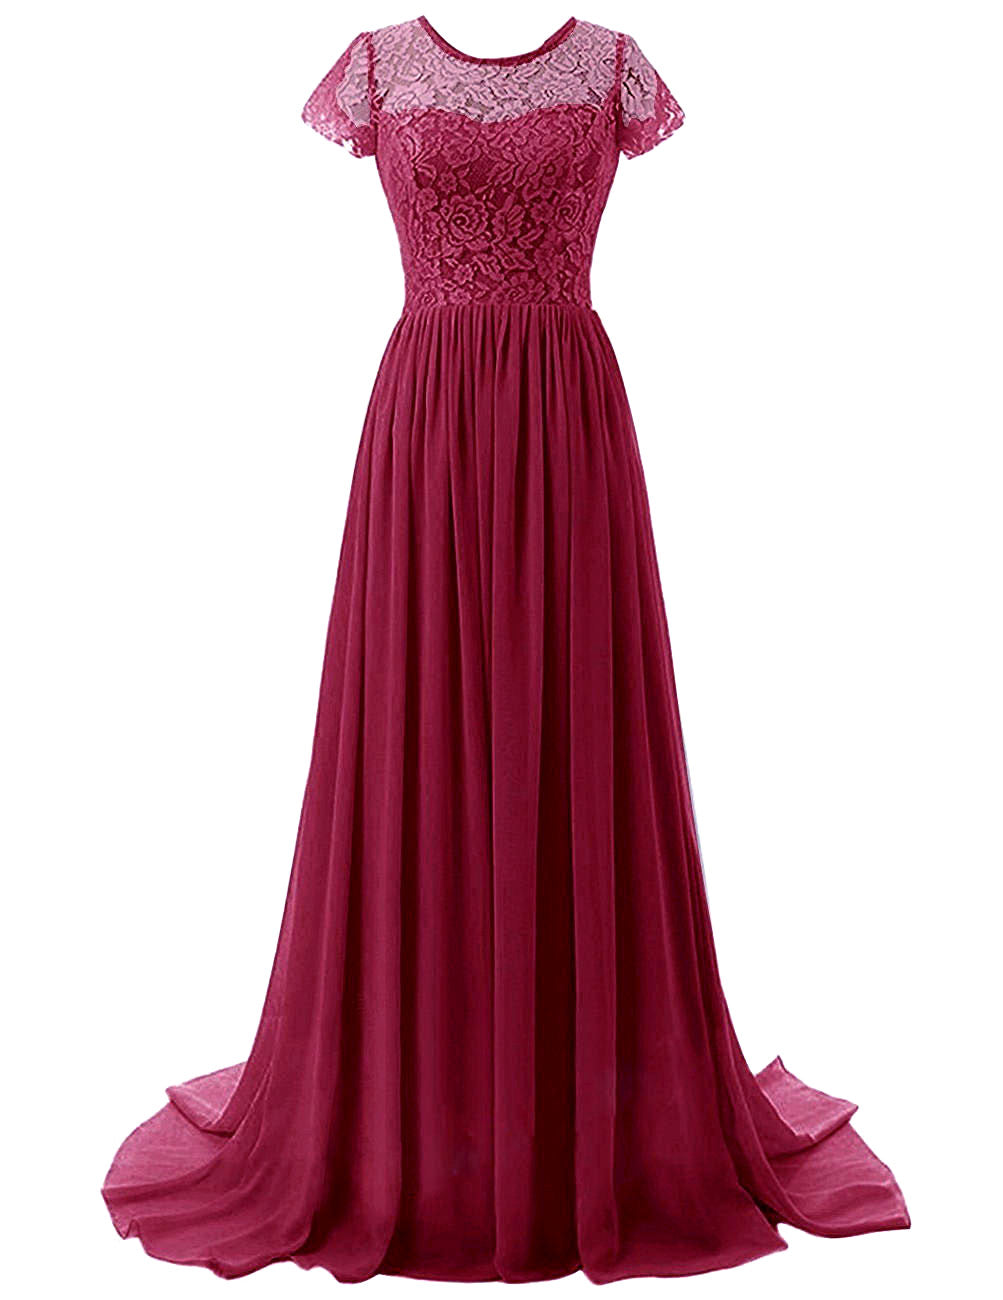 Helena berry burgundy short sleeved lace chiffon long bridesmaid wedding prom evening dress loulous bridal boutique ltd uk